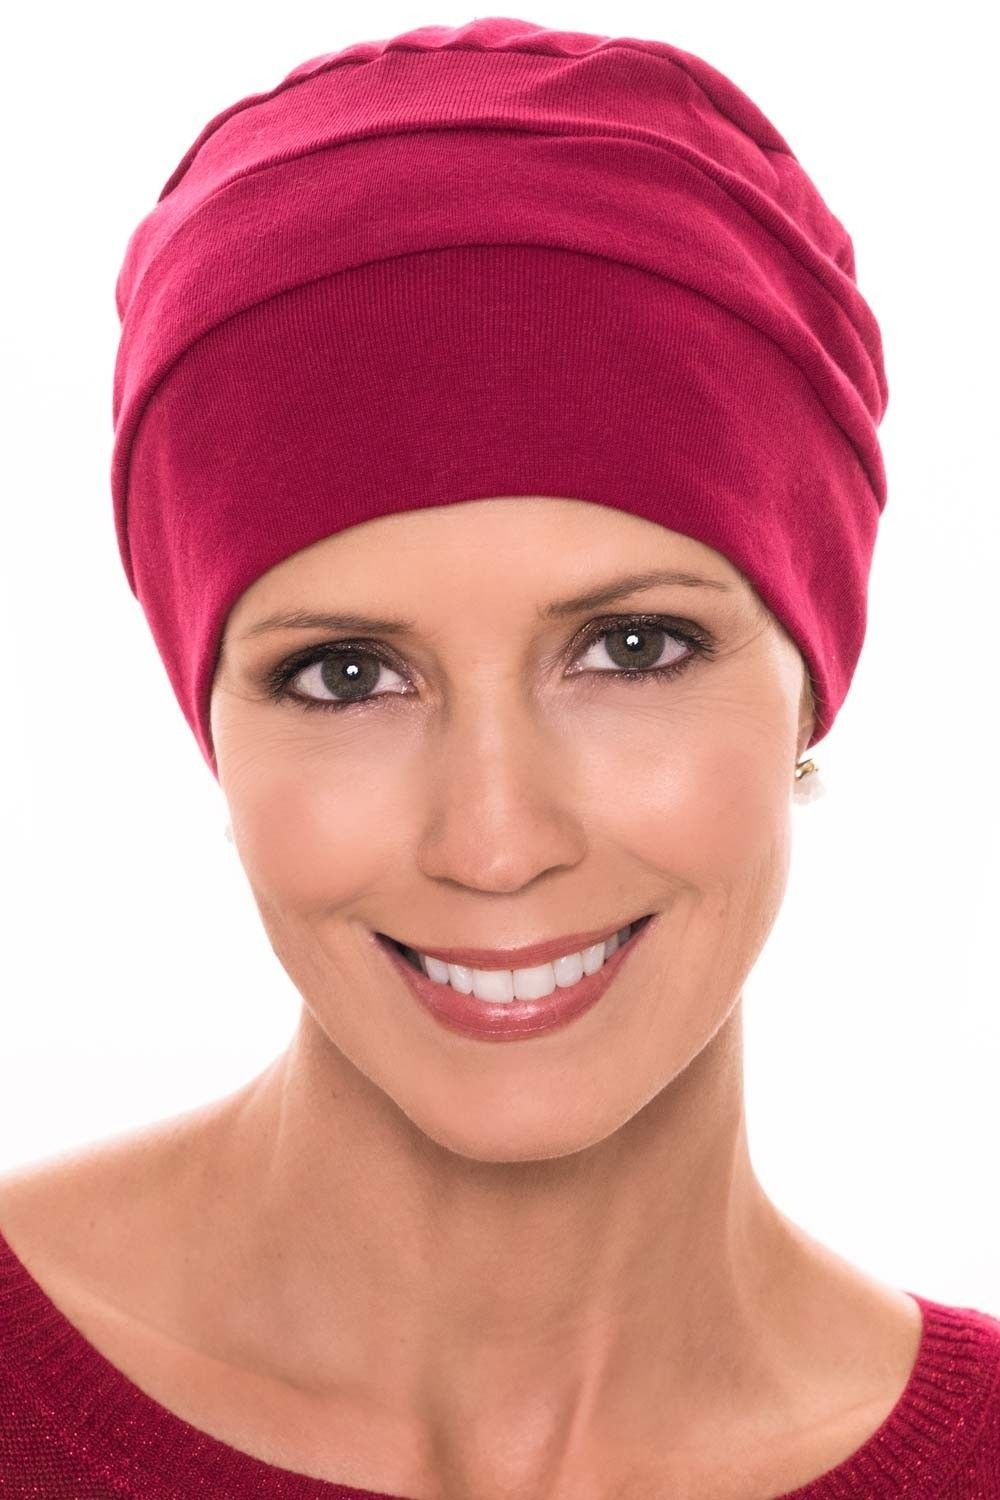 100% Cotton Cancer Turbans  Three Seam Cancer Hats for Chemo Patients 76affc79e22